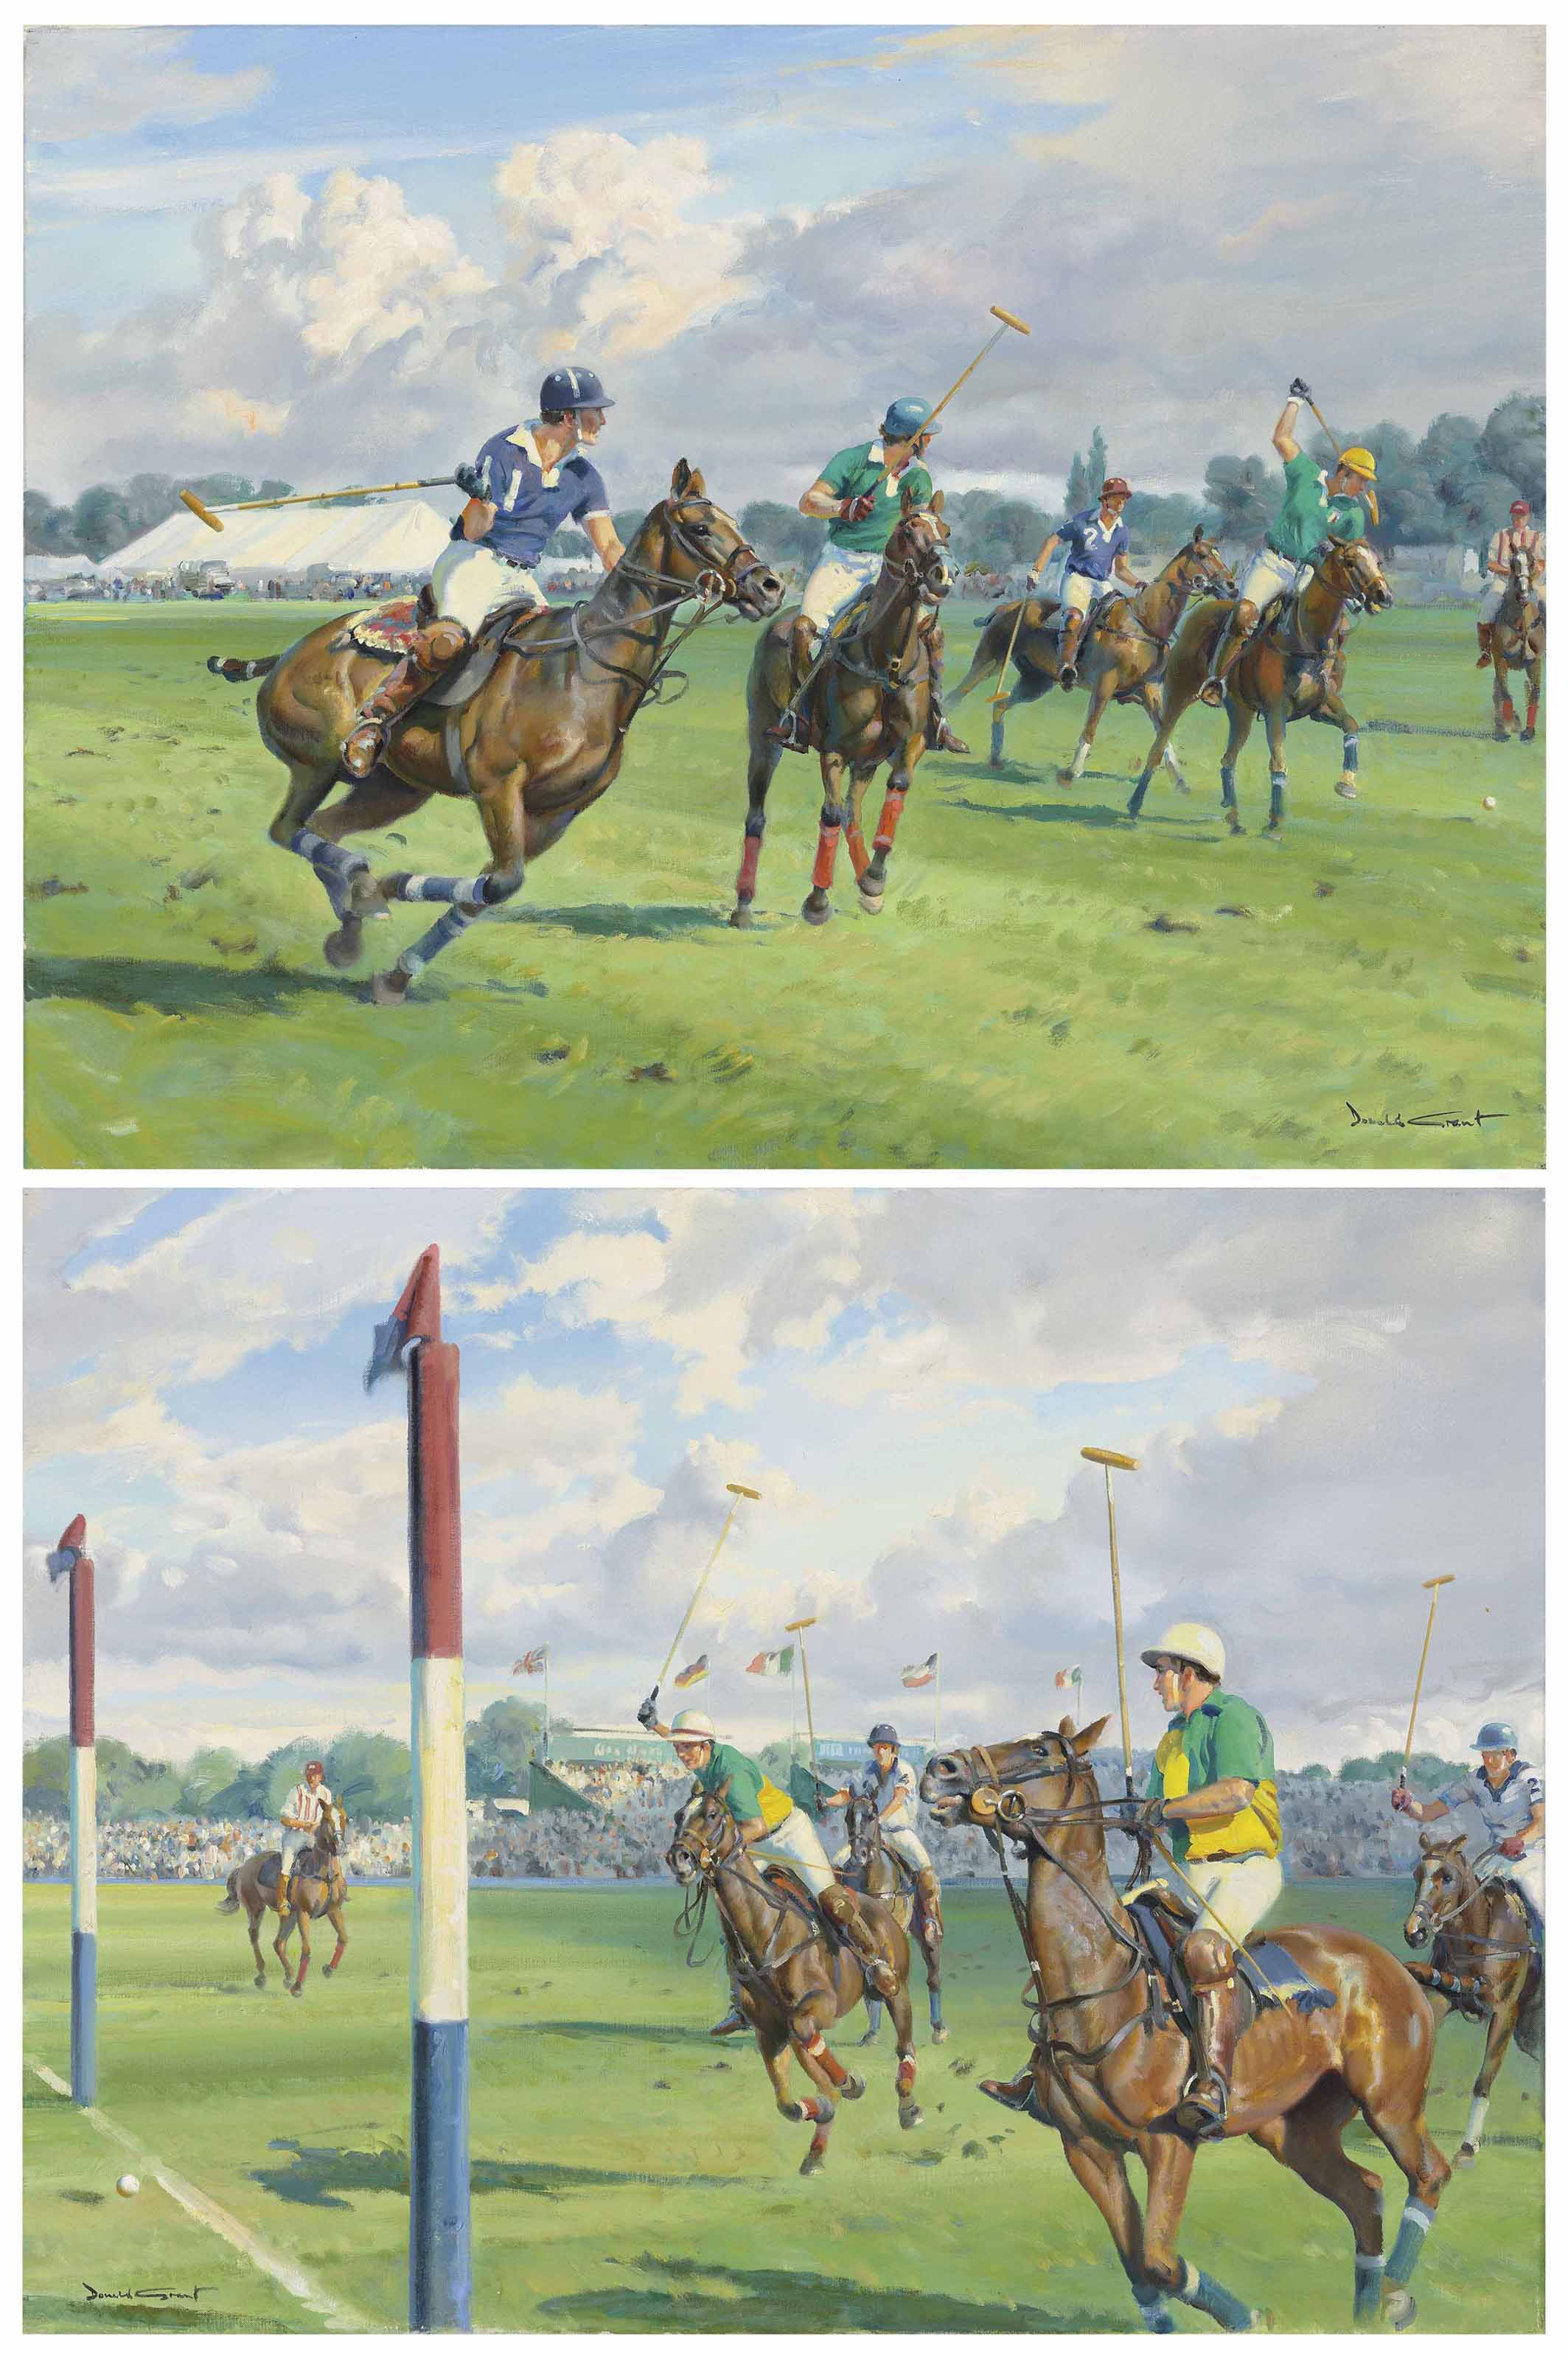 Two polo scenes: Going for the ball; and At the goal